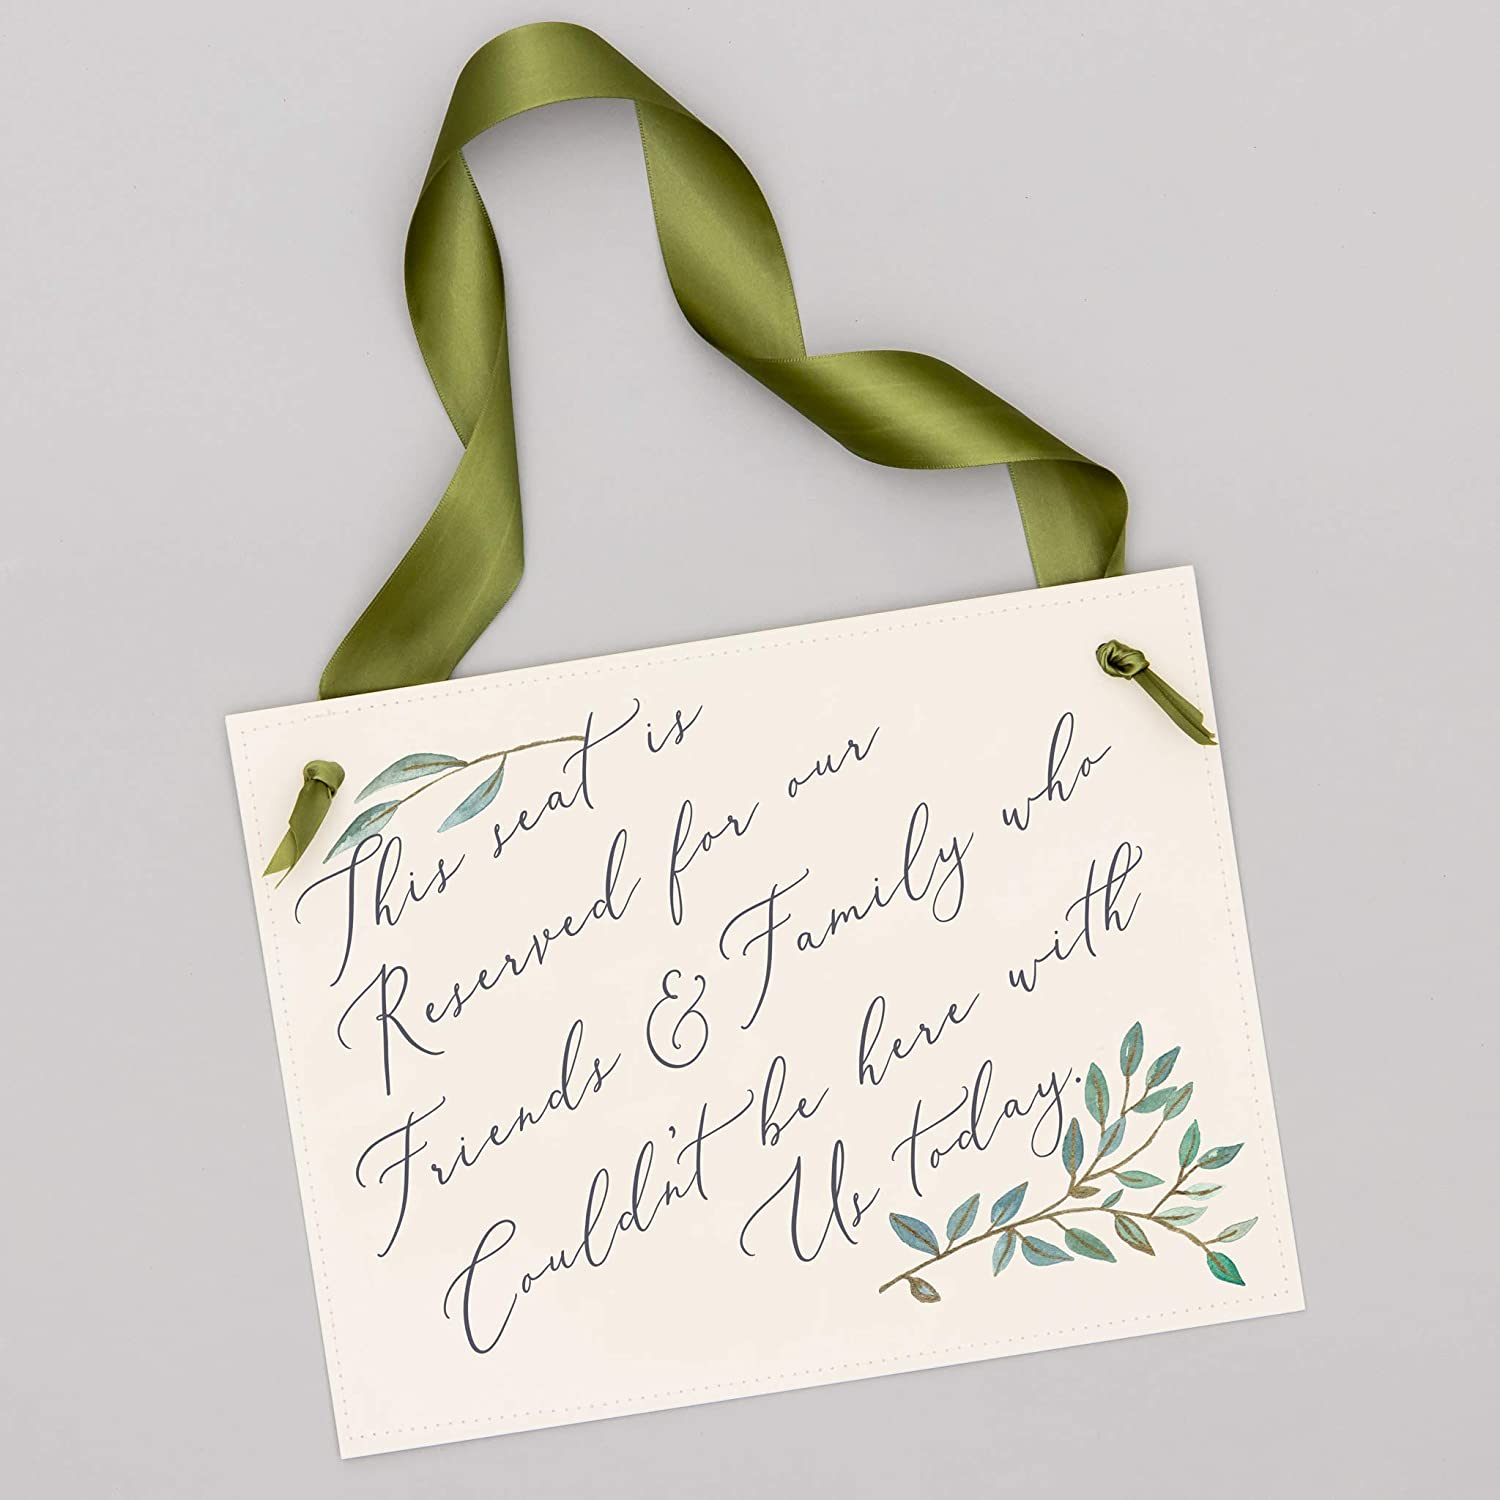 This Seat Is Reserved For Friends /& Family Who Couldnt Be Here With Us Today Script Wedding Chair Sign With Delicate Green and Gold Leaves